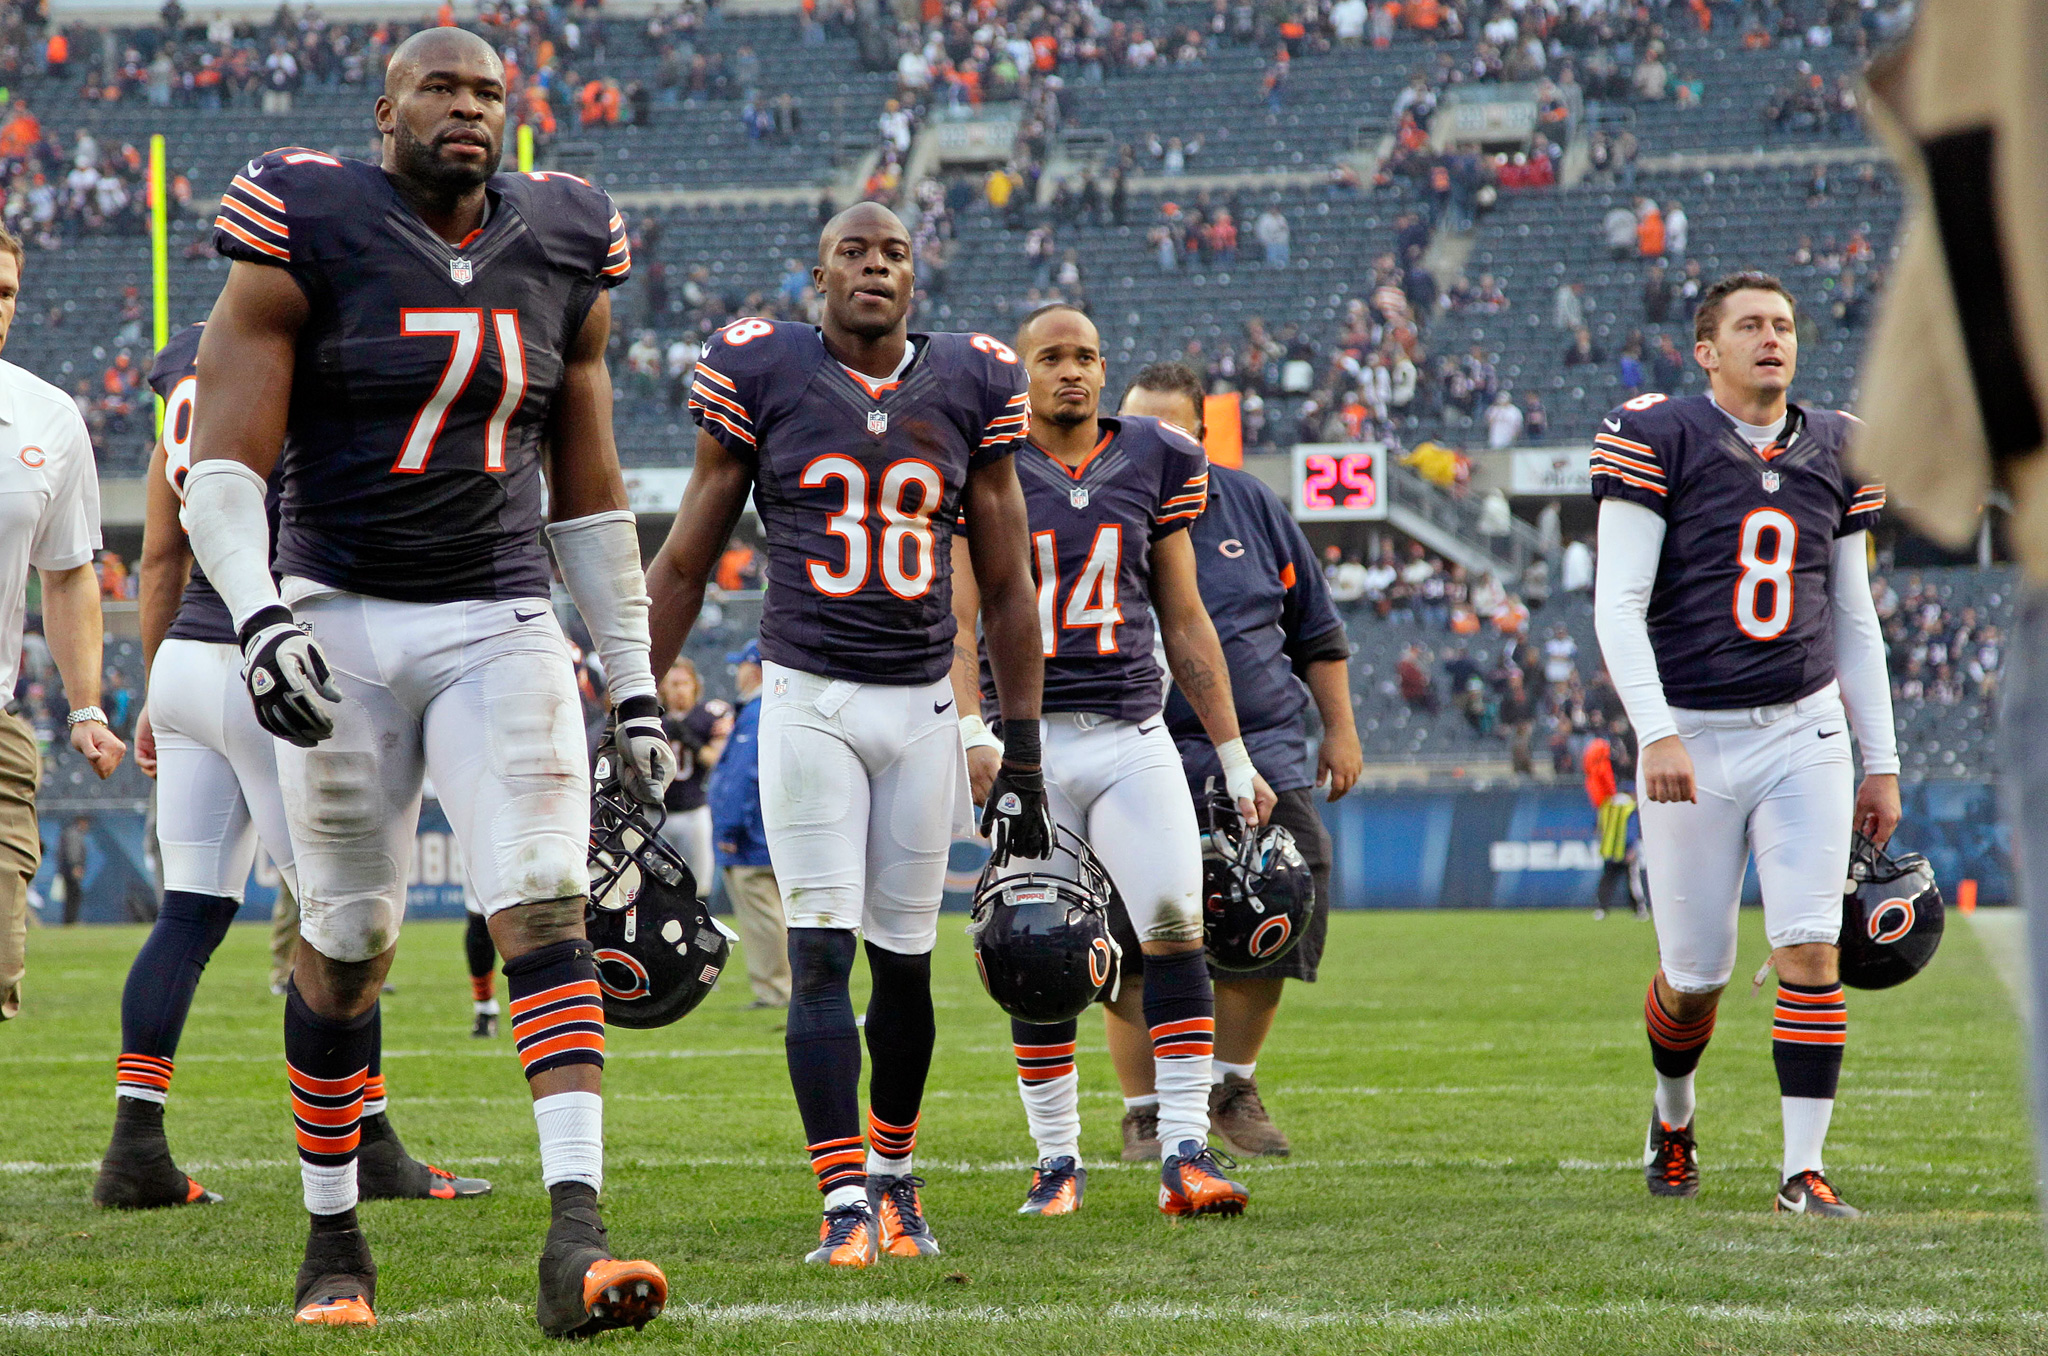 Bears walk off the field after loss